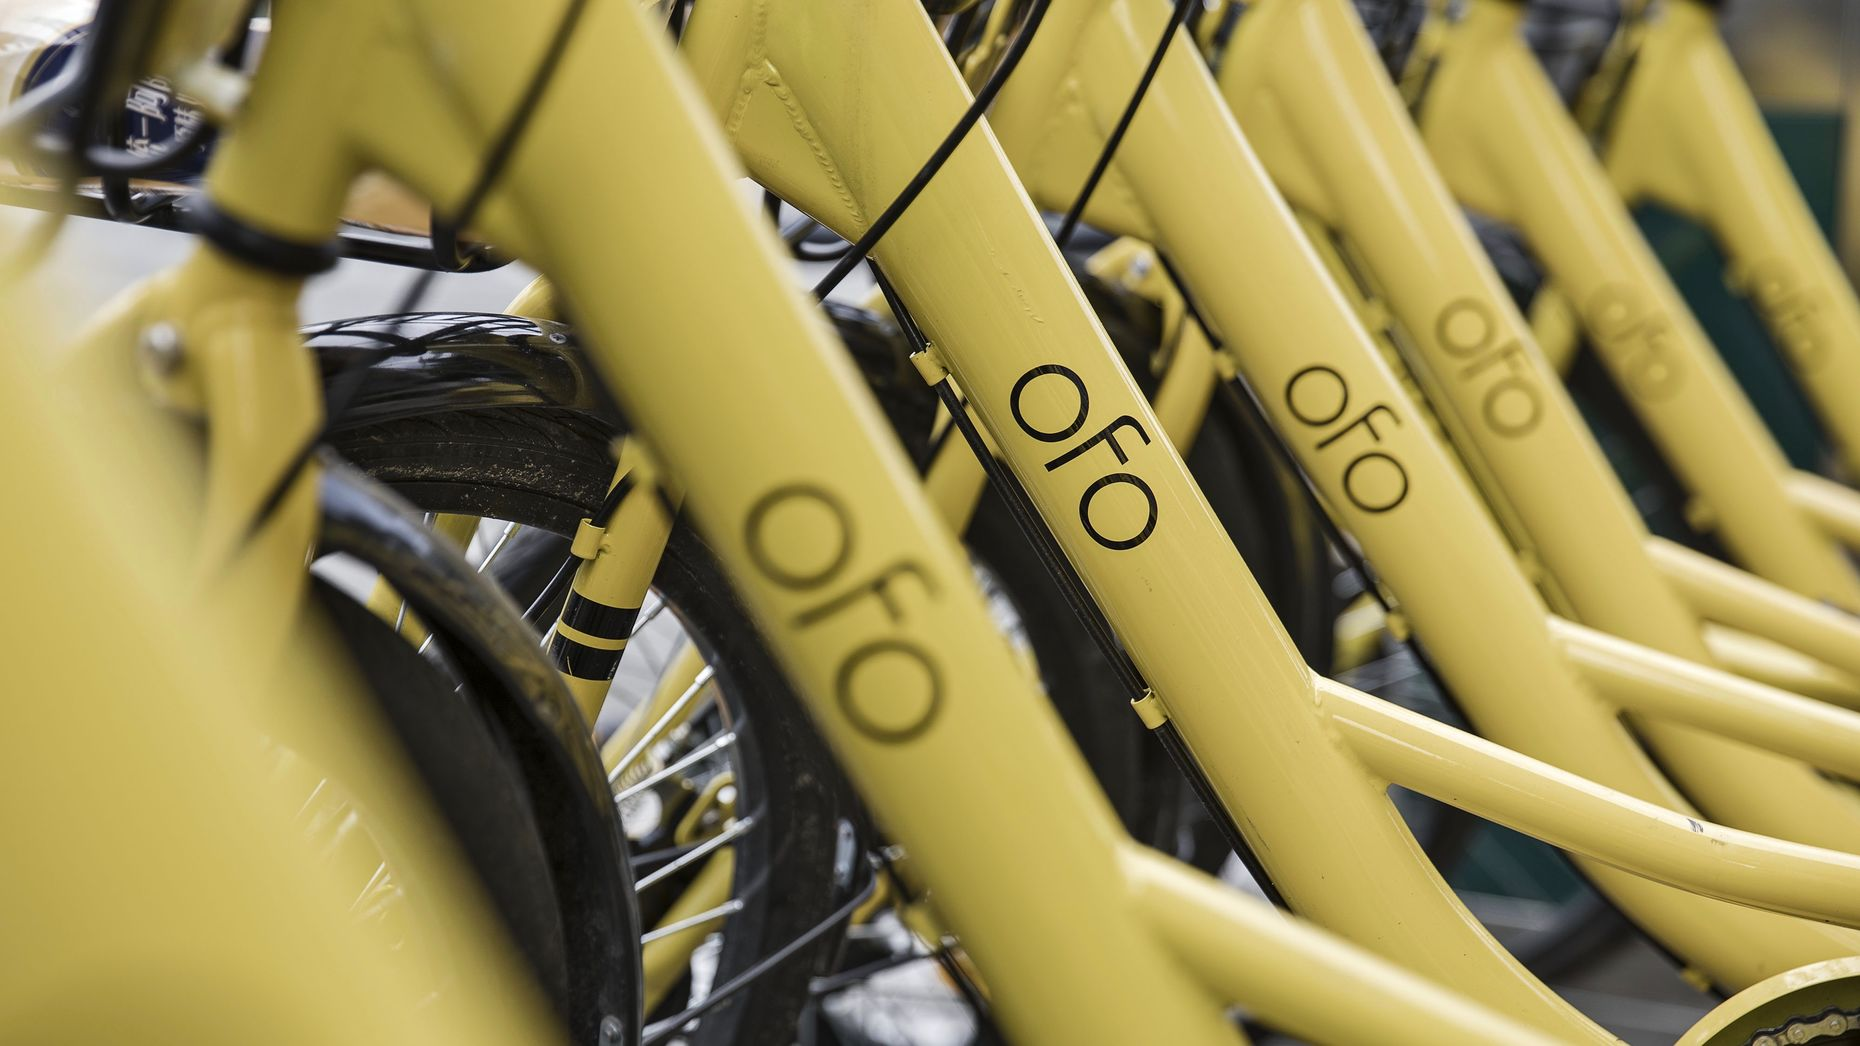 Ofo bikes parked in Shanghai last year. Photo by Bloomberg.